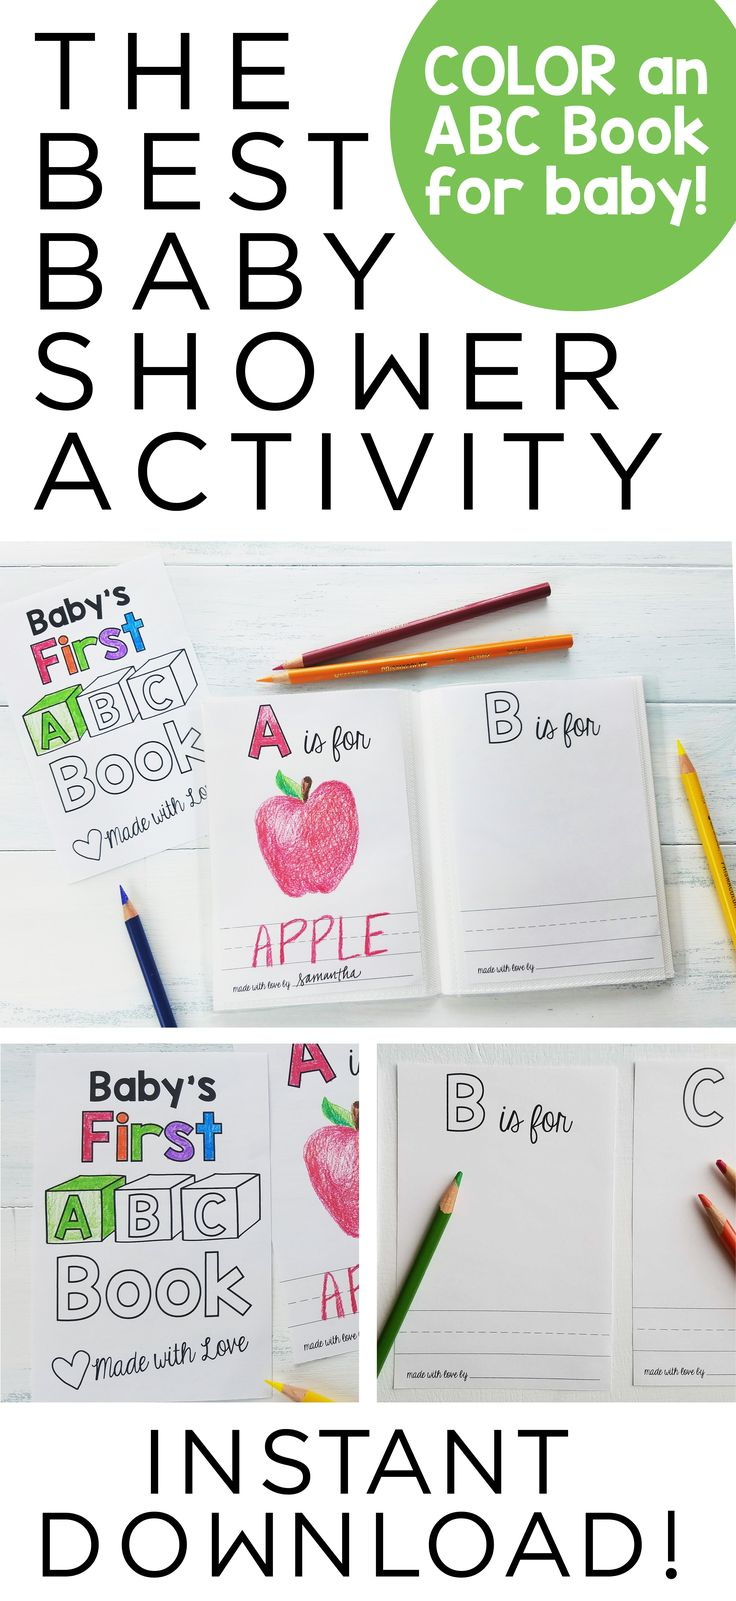 Book Inspired Baby Shower | Guests color a page for Baby's First ABC Book | Baby Shower ABC Book Template | B is for Baby Book Brunch